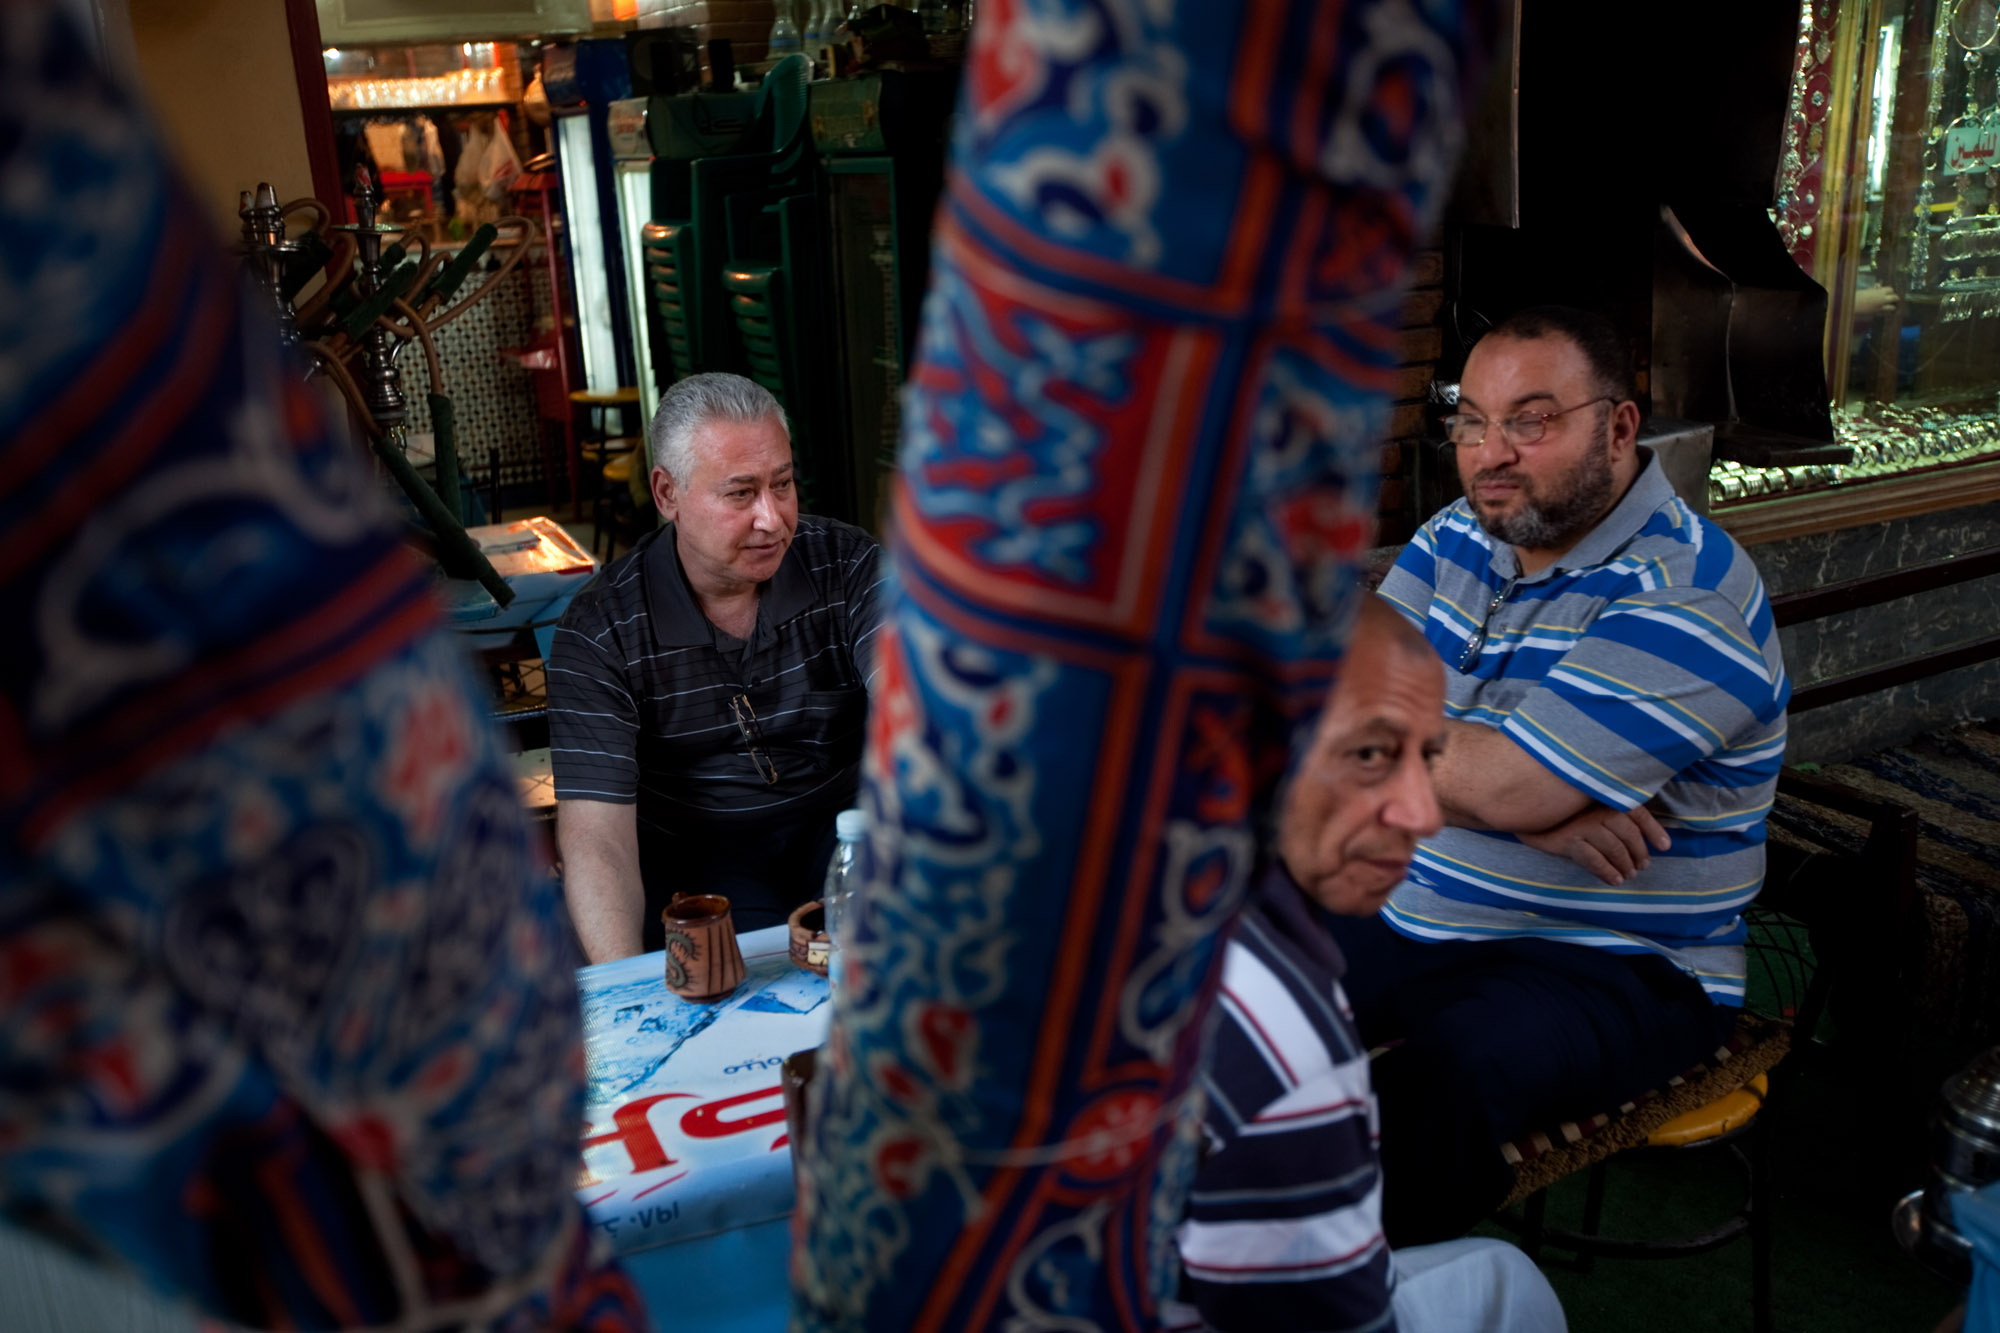 In the Khan el-Khalili market, cafe owner Hassan El Halwagy (left) thinks that Islamist groups are not qualified to run the country.